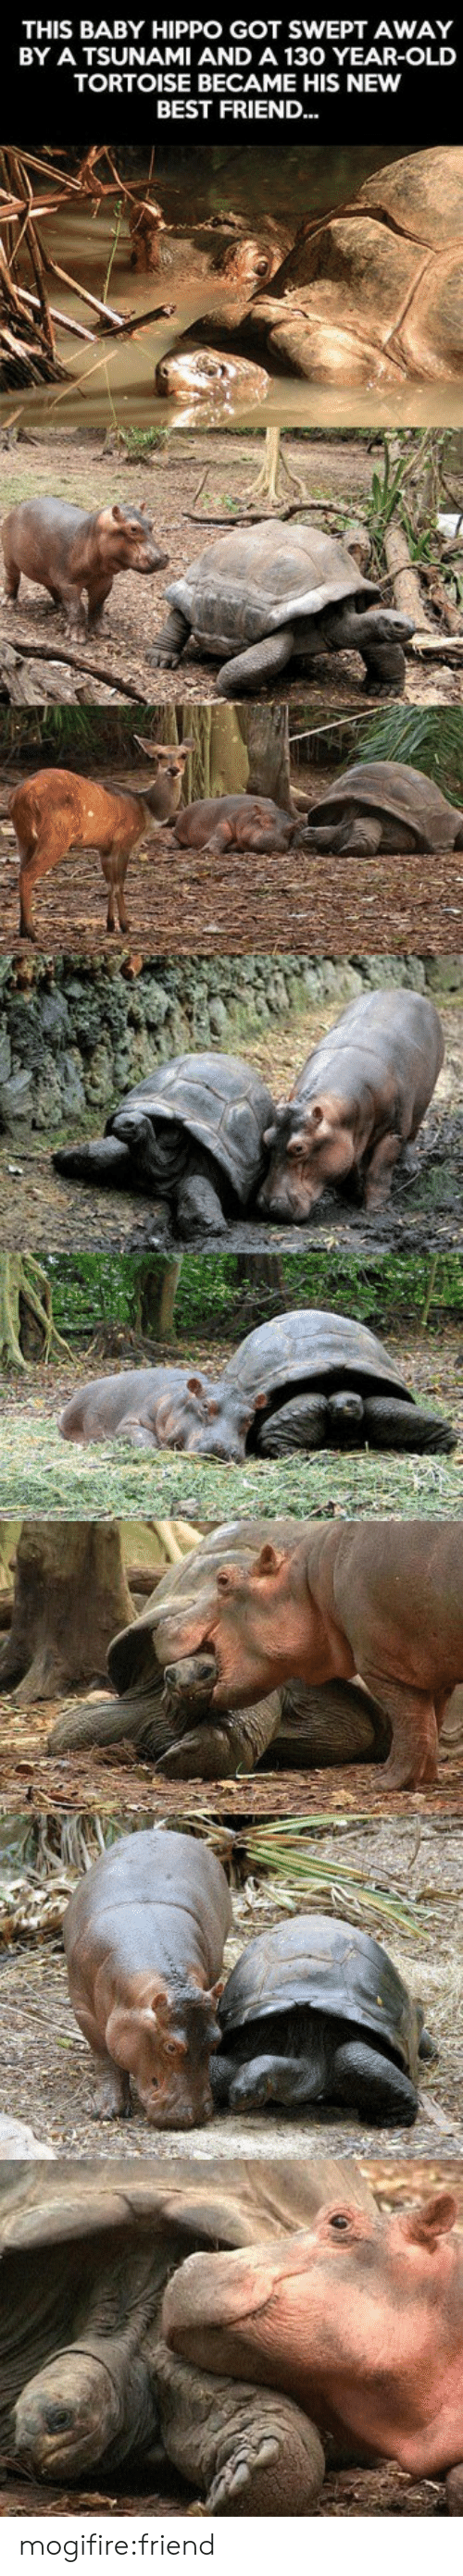 Best Friend, Target, and Tumblr: THIS BABY HIPPO GOT SWEPT AWAY  BY A TSUNAMI AND A 130 YEAR-OLD  TORTOISE BECAME HIS NEW  BEST FRIEND... mogifire:friend